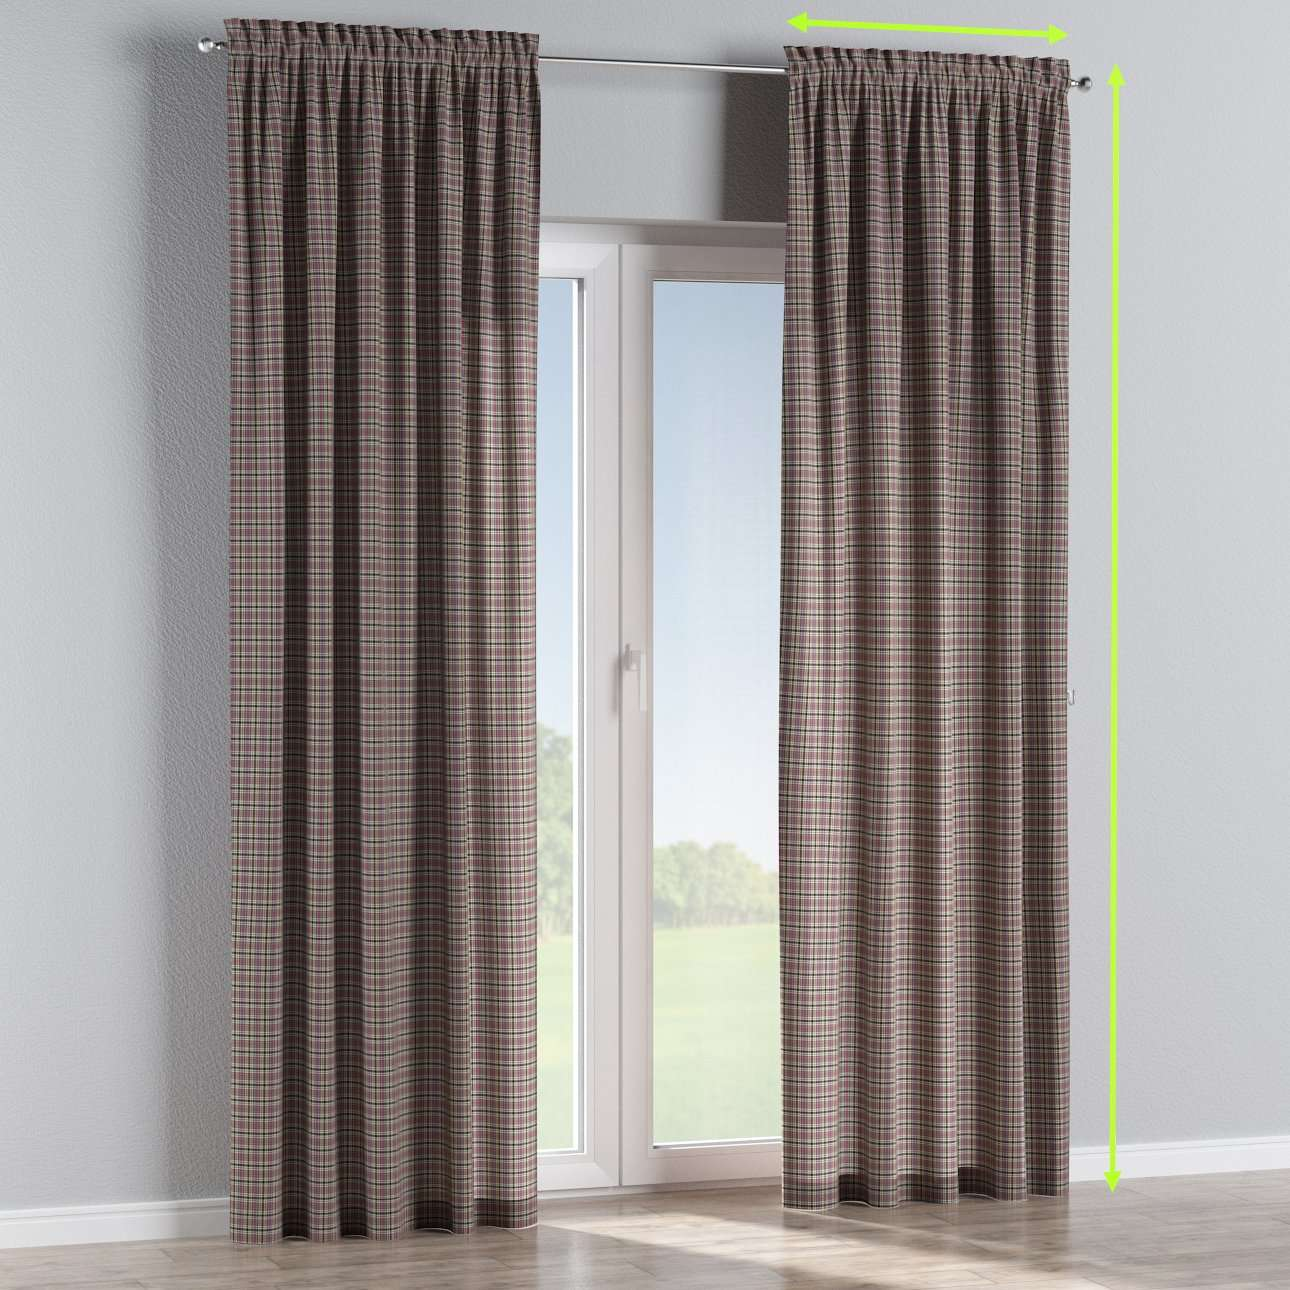 Slot and frill lined curtains in collection Bristol, fabric: 126-32